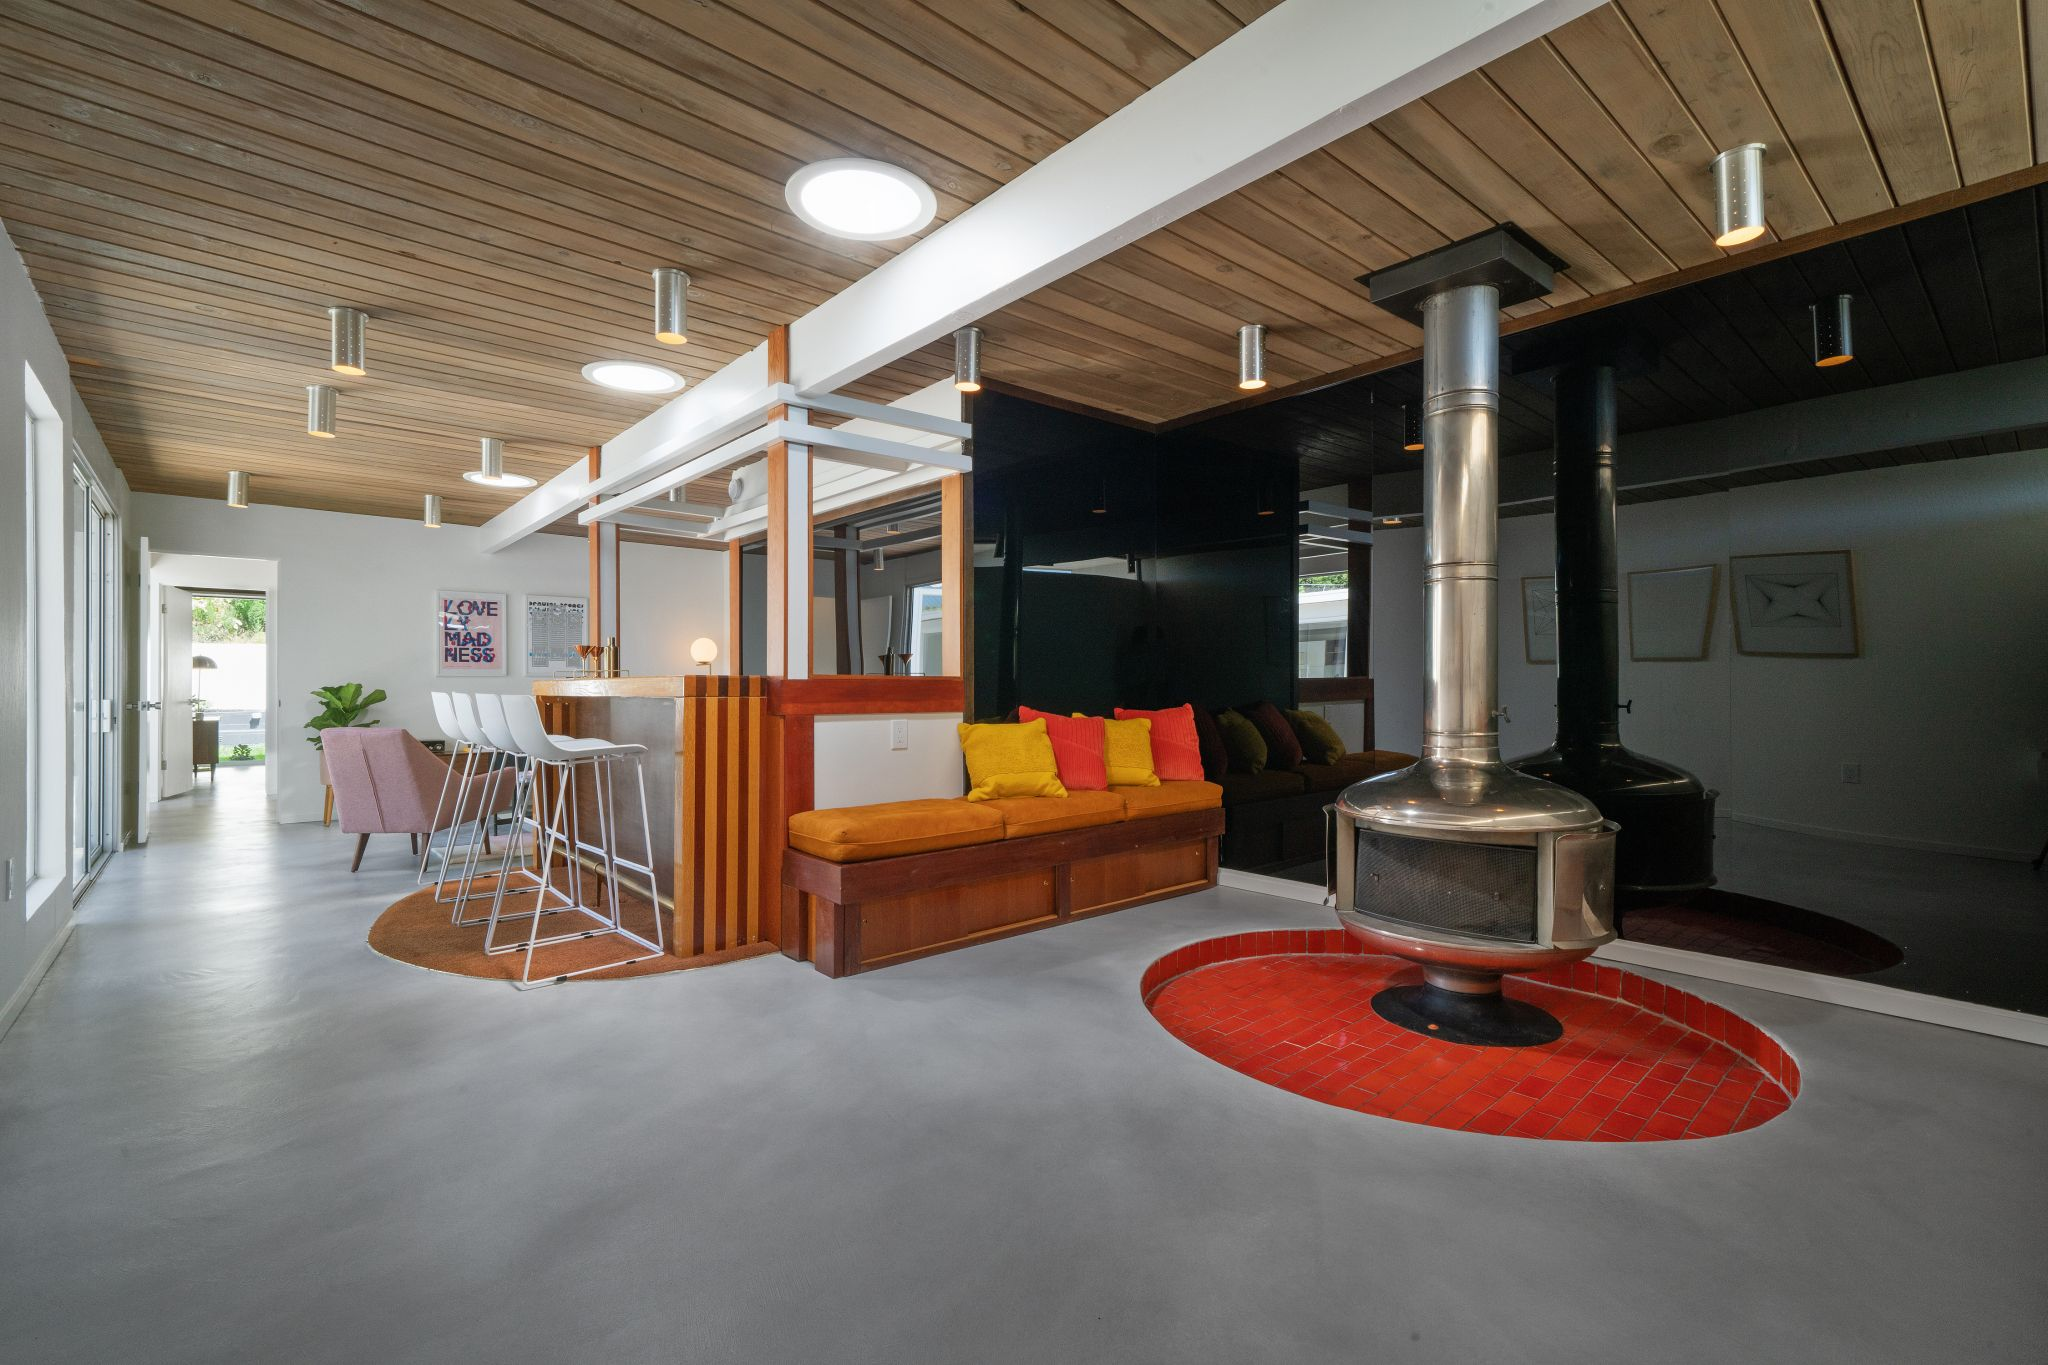 The property was originally built as a five-bedroom home. One bedroom and the garage have since been converted into an entertainment space with custom wet bar, sunken lounge area with built-in seating, a floating steel fireplace and period lighting throughout.